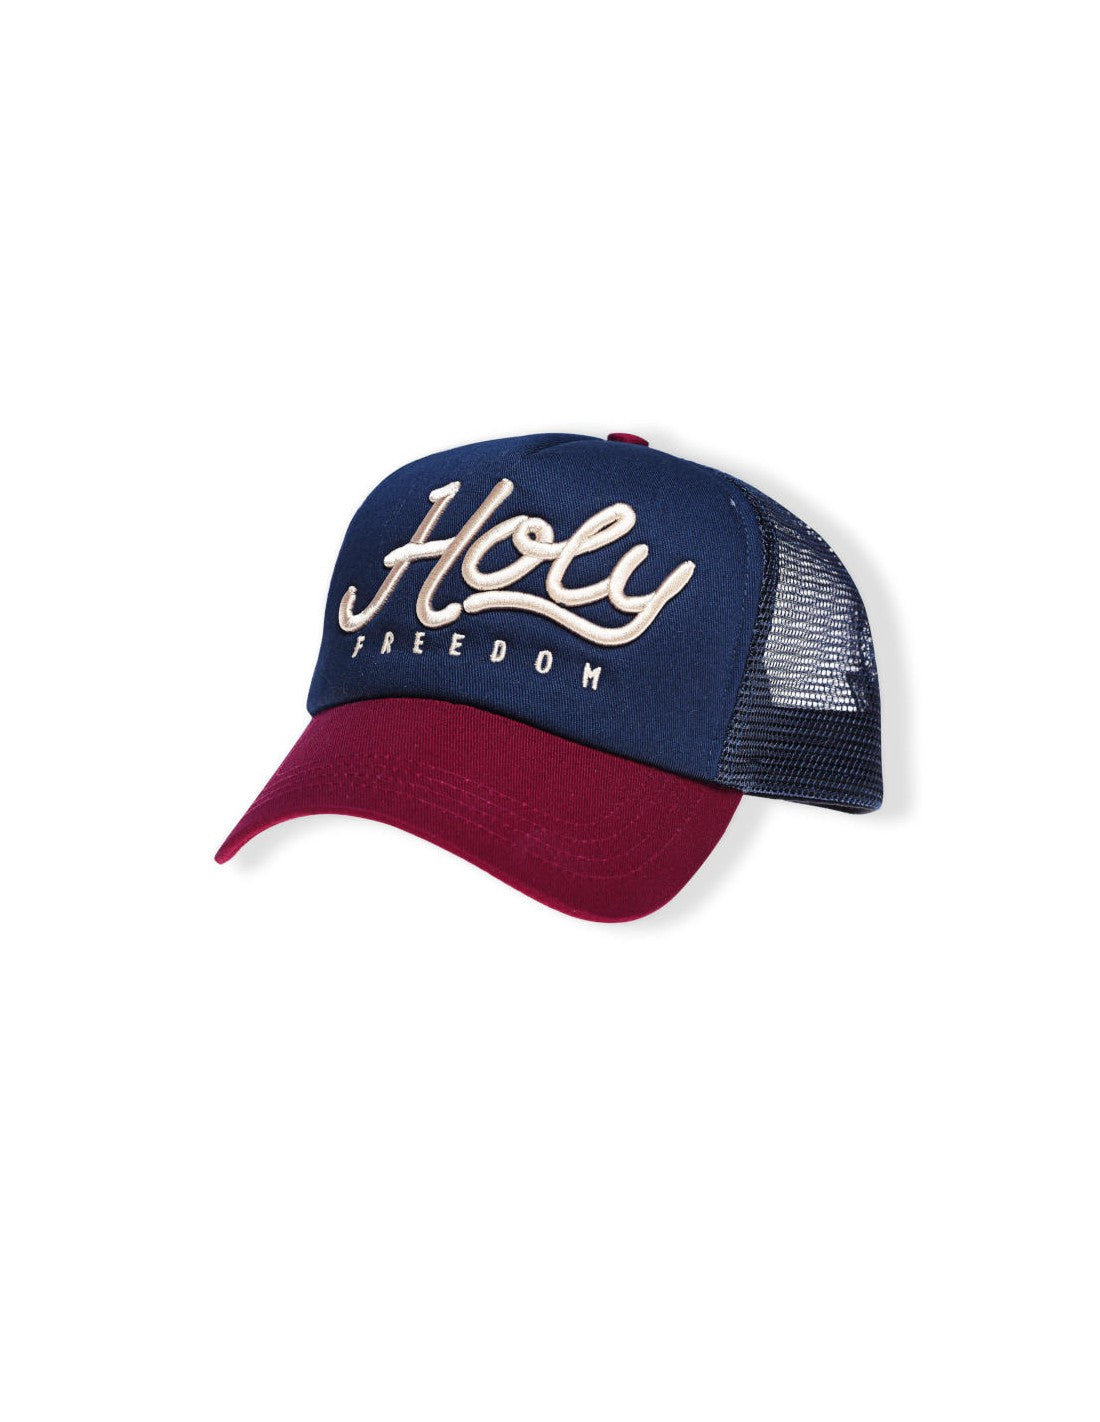 HOLY FREEDOM MONTGOMERY BISCUITS CAP